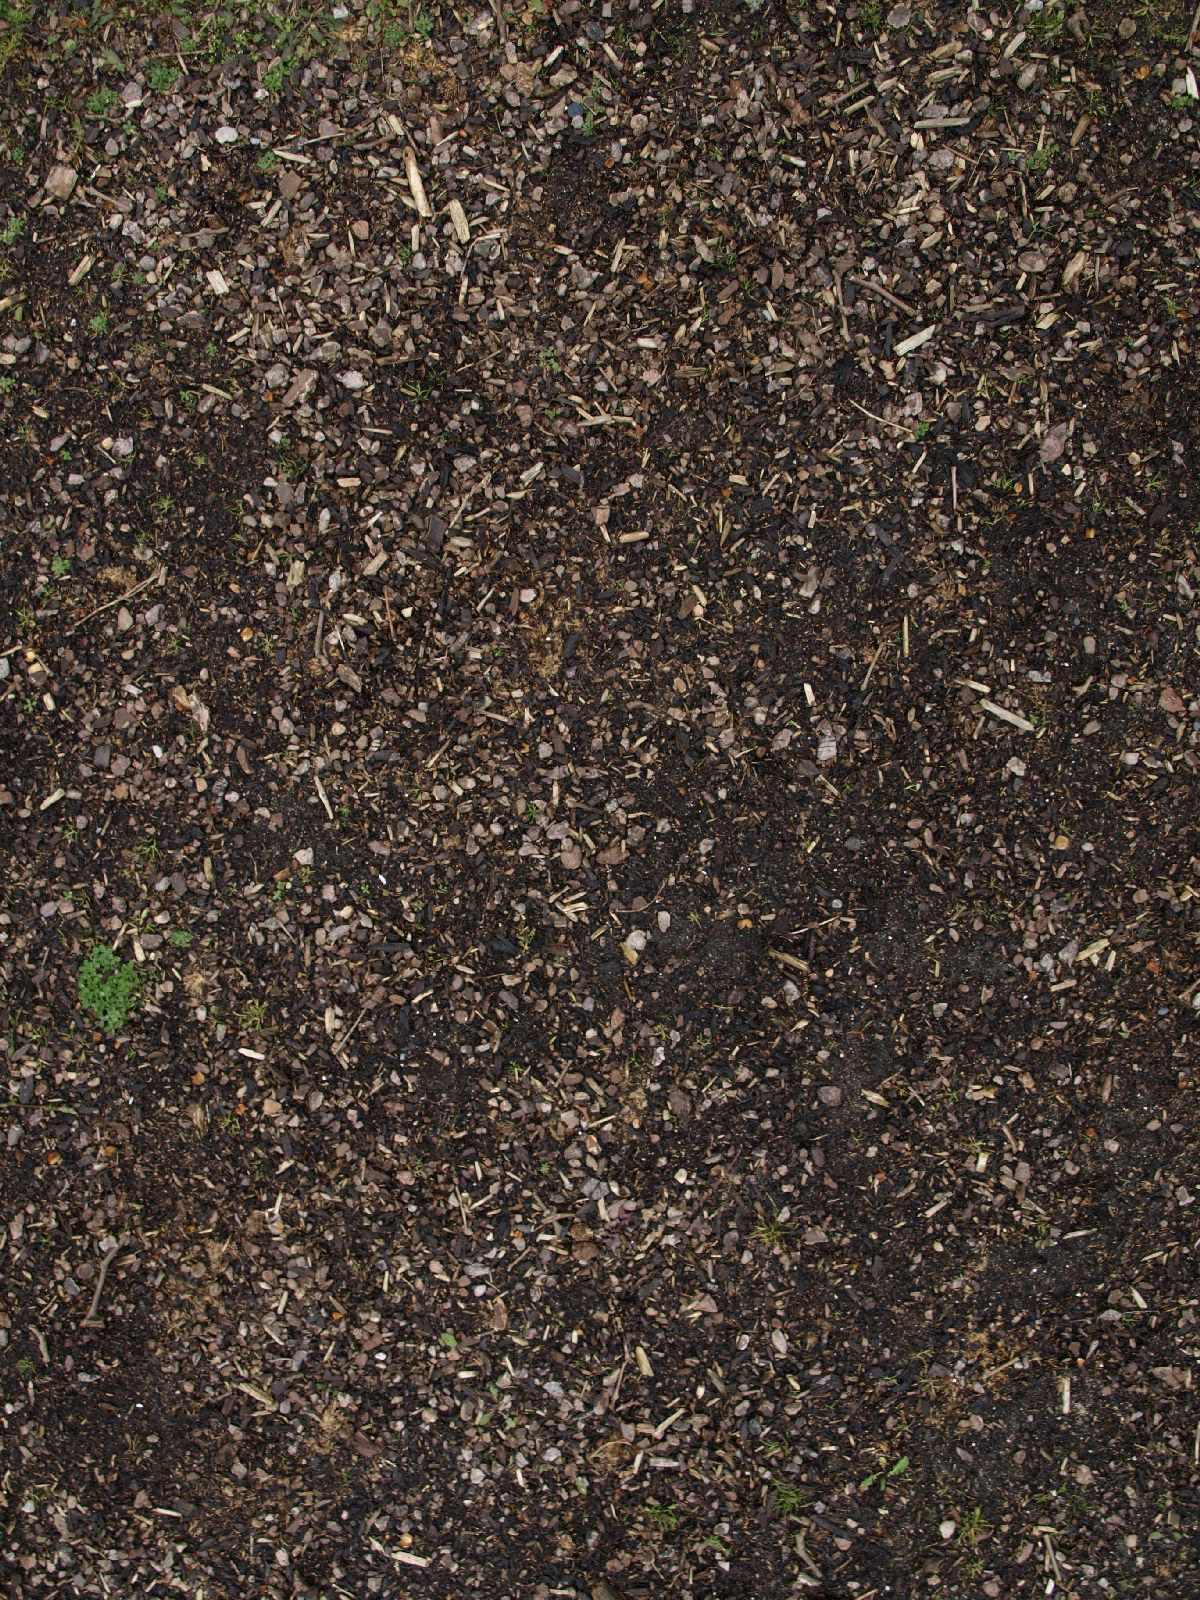 Ground-Nature_Texture_A_P4131107